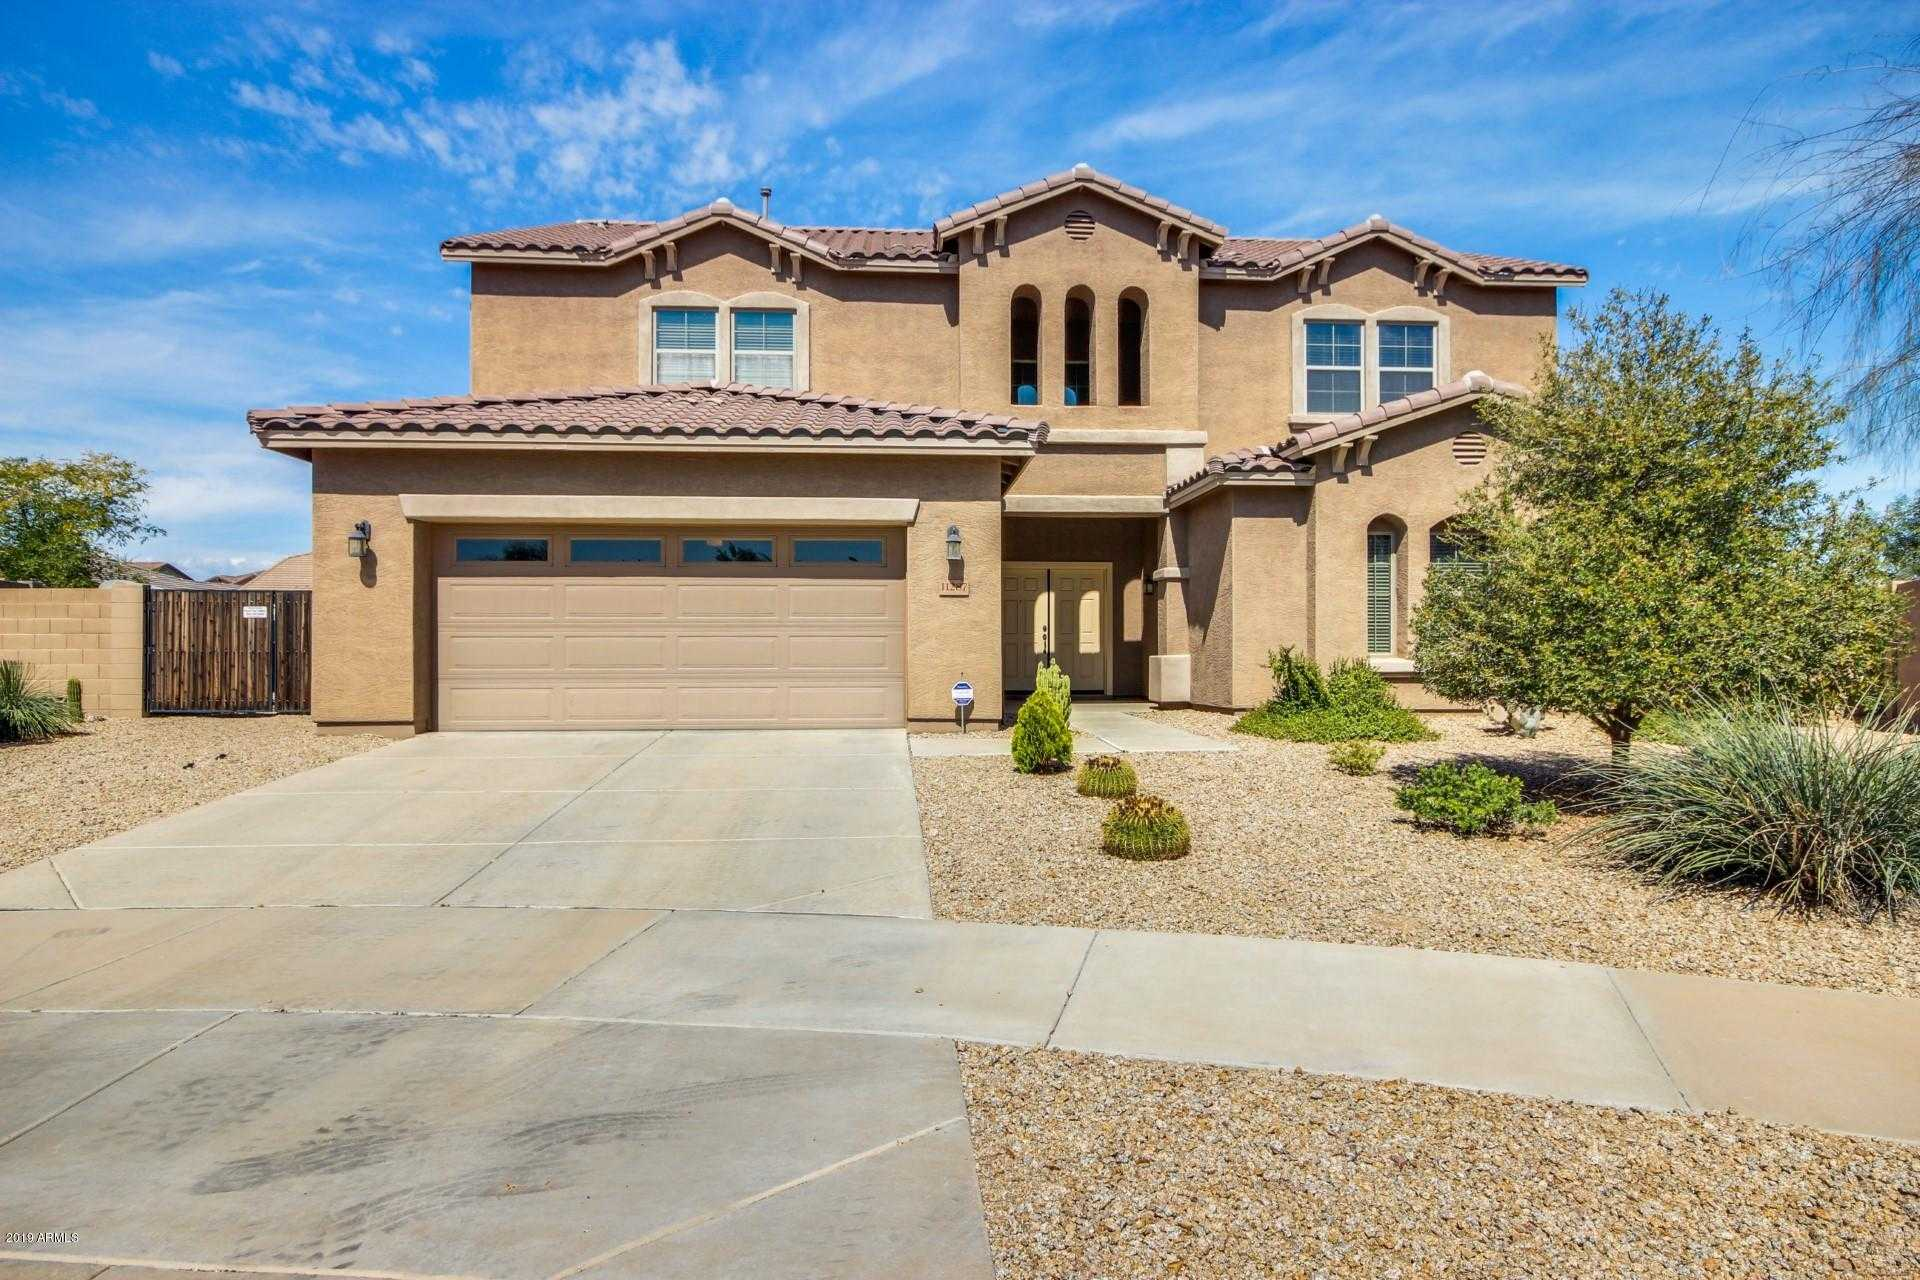 $400,000 - 4Br/3Ba - Home for Sale in Sycamore Farms Parcel 13, Surprise